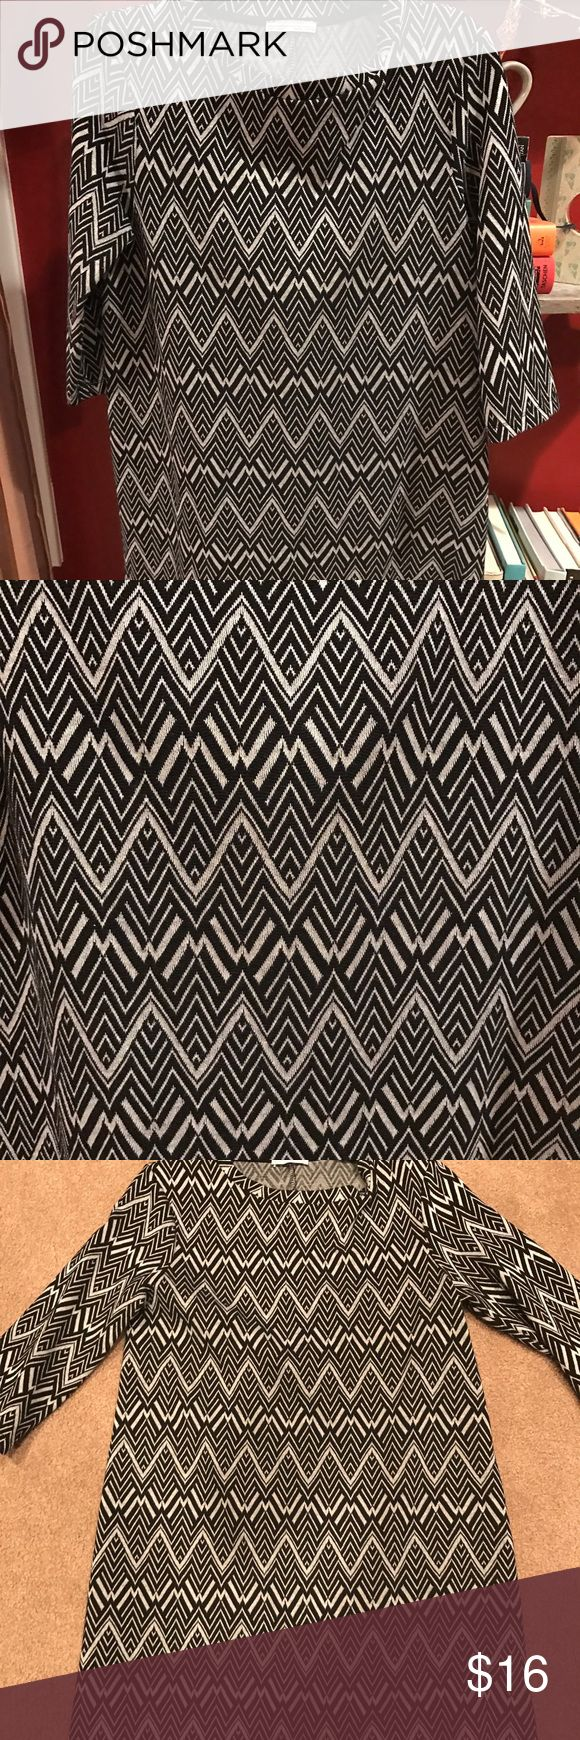 New Zara Aztec Print Dress Size Large worn once! Near perfect condition perfect for the working gal 👌👌👌 Zara Dresses Midi